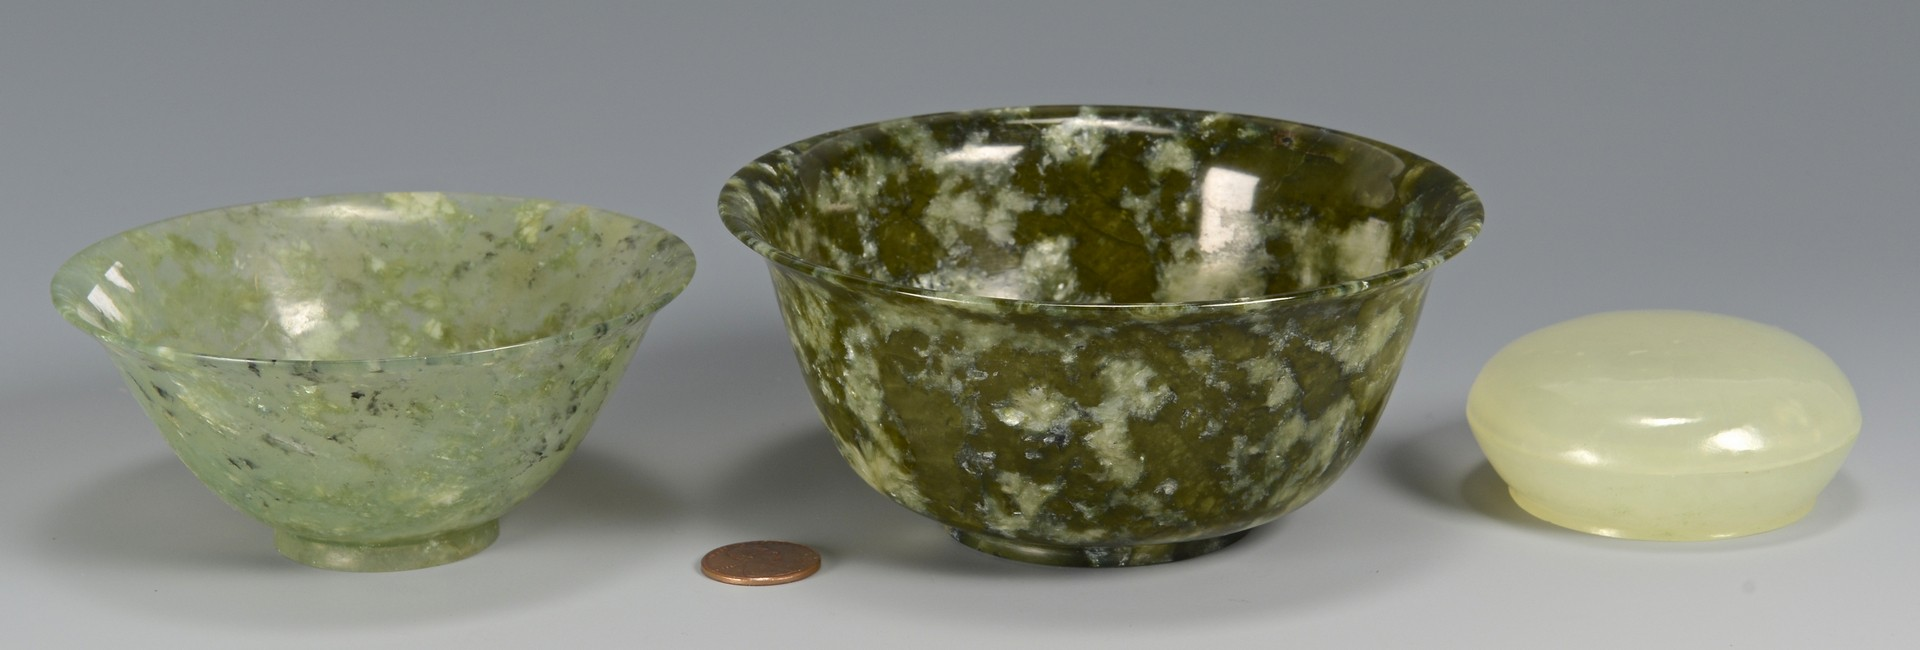 Lot 722: 2 carved jade bowls and covered box